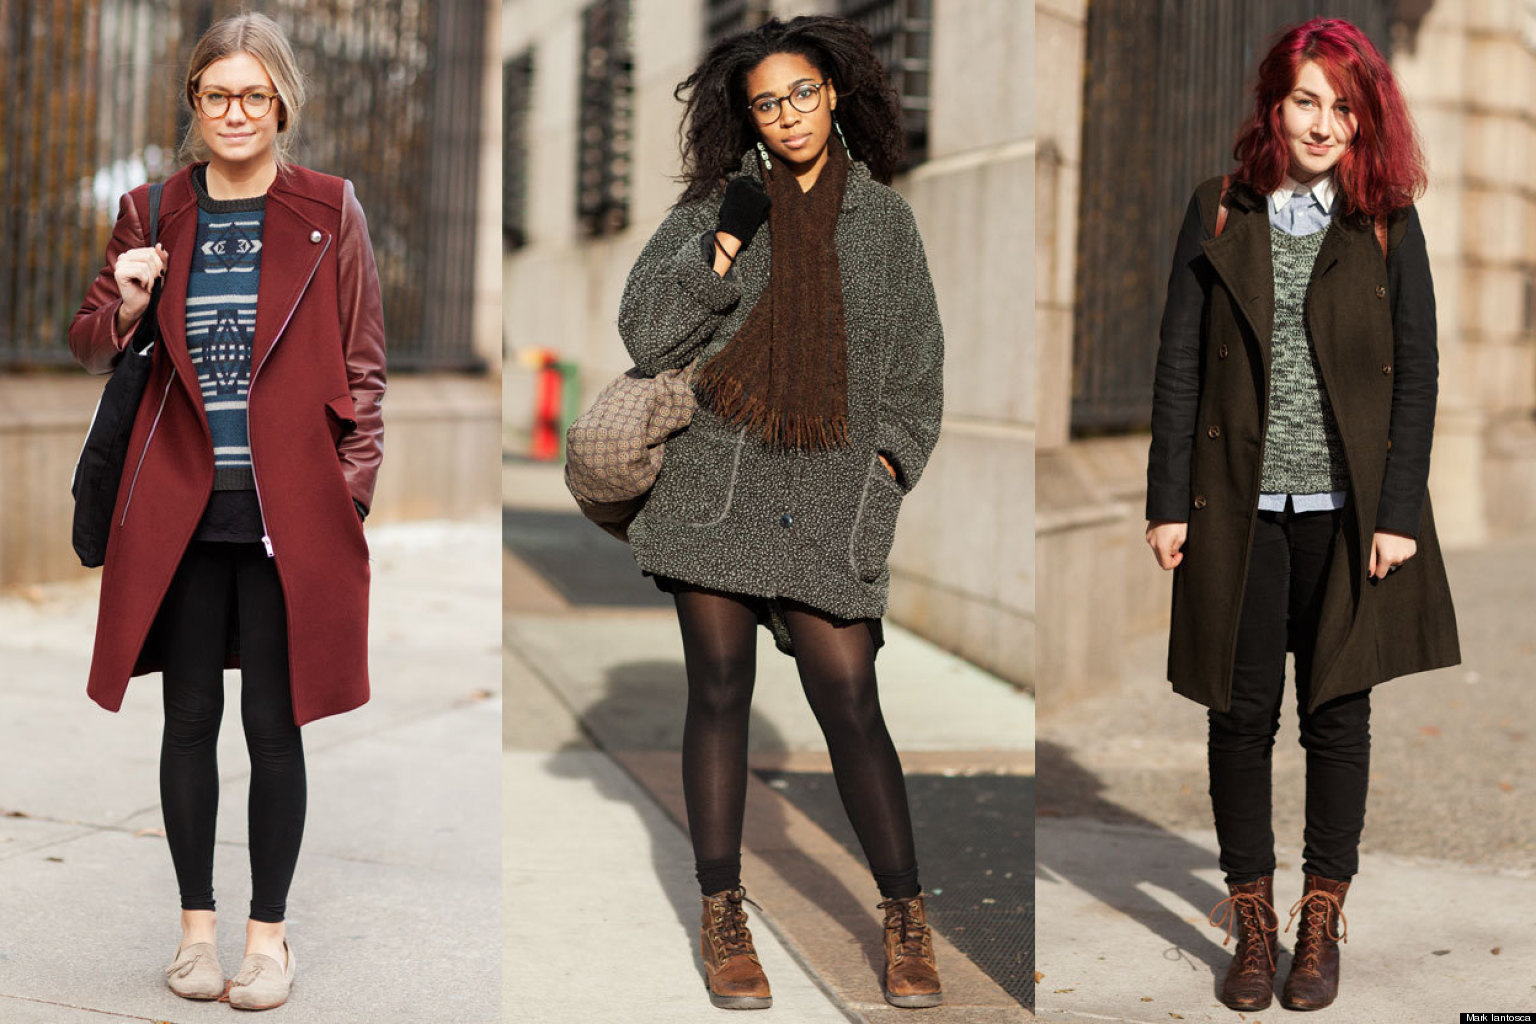 campus fashion: winter outfit inspiration from 15 stylish nyc